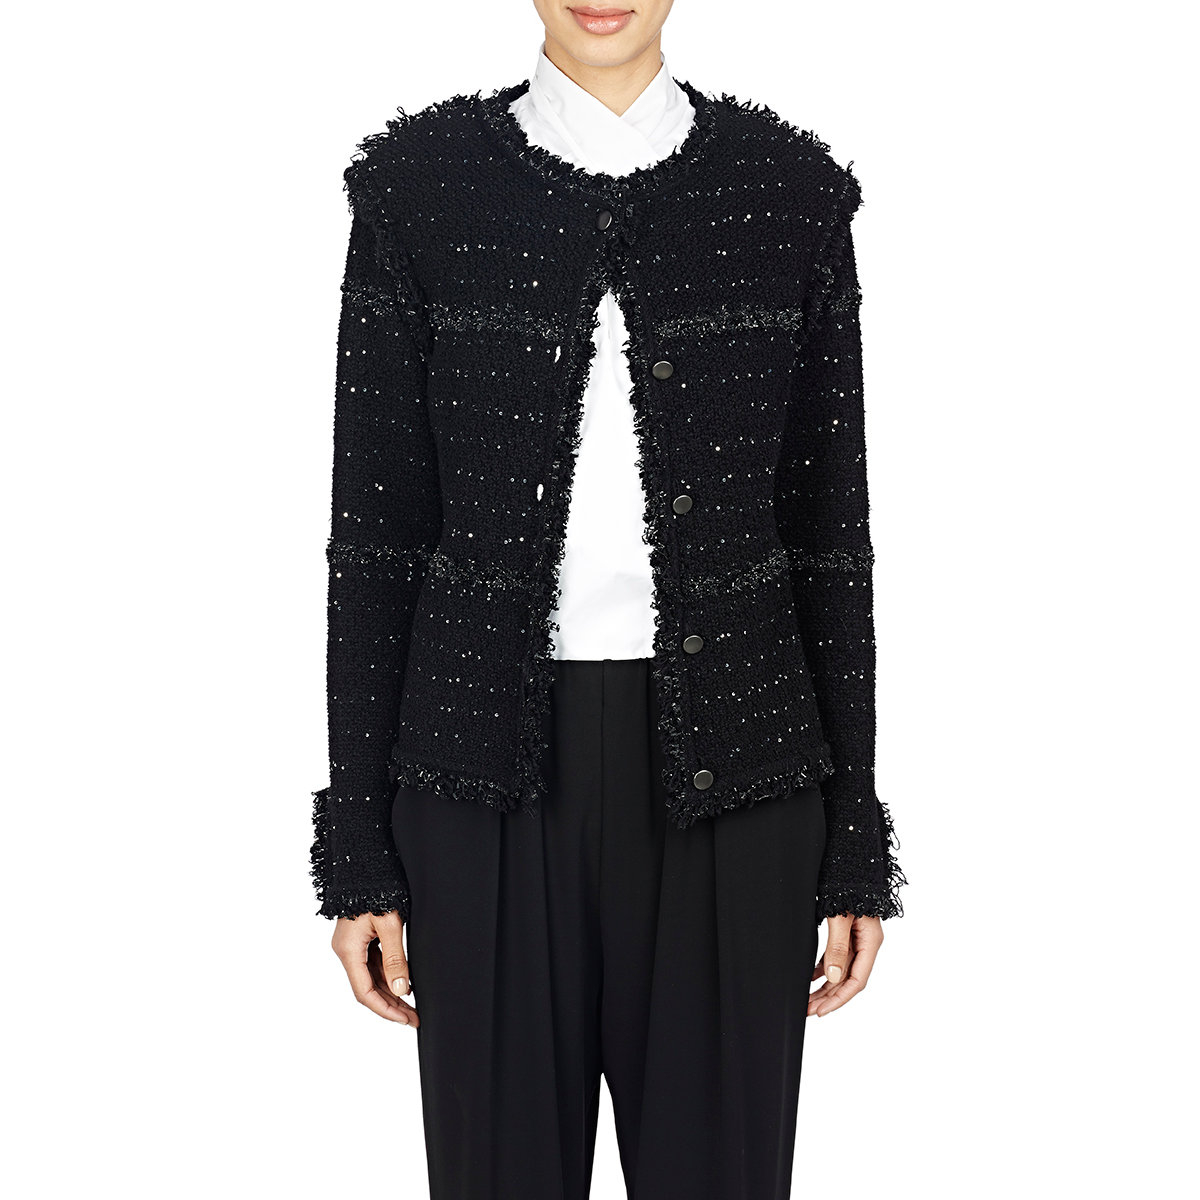 Lanvin Bouclé Tweed Sweater Jacket in Black | Lyst